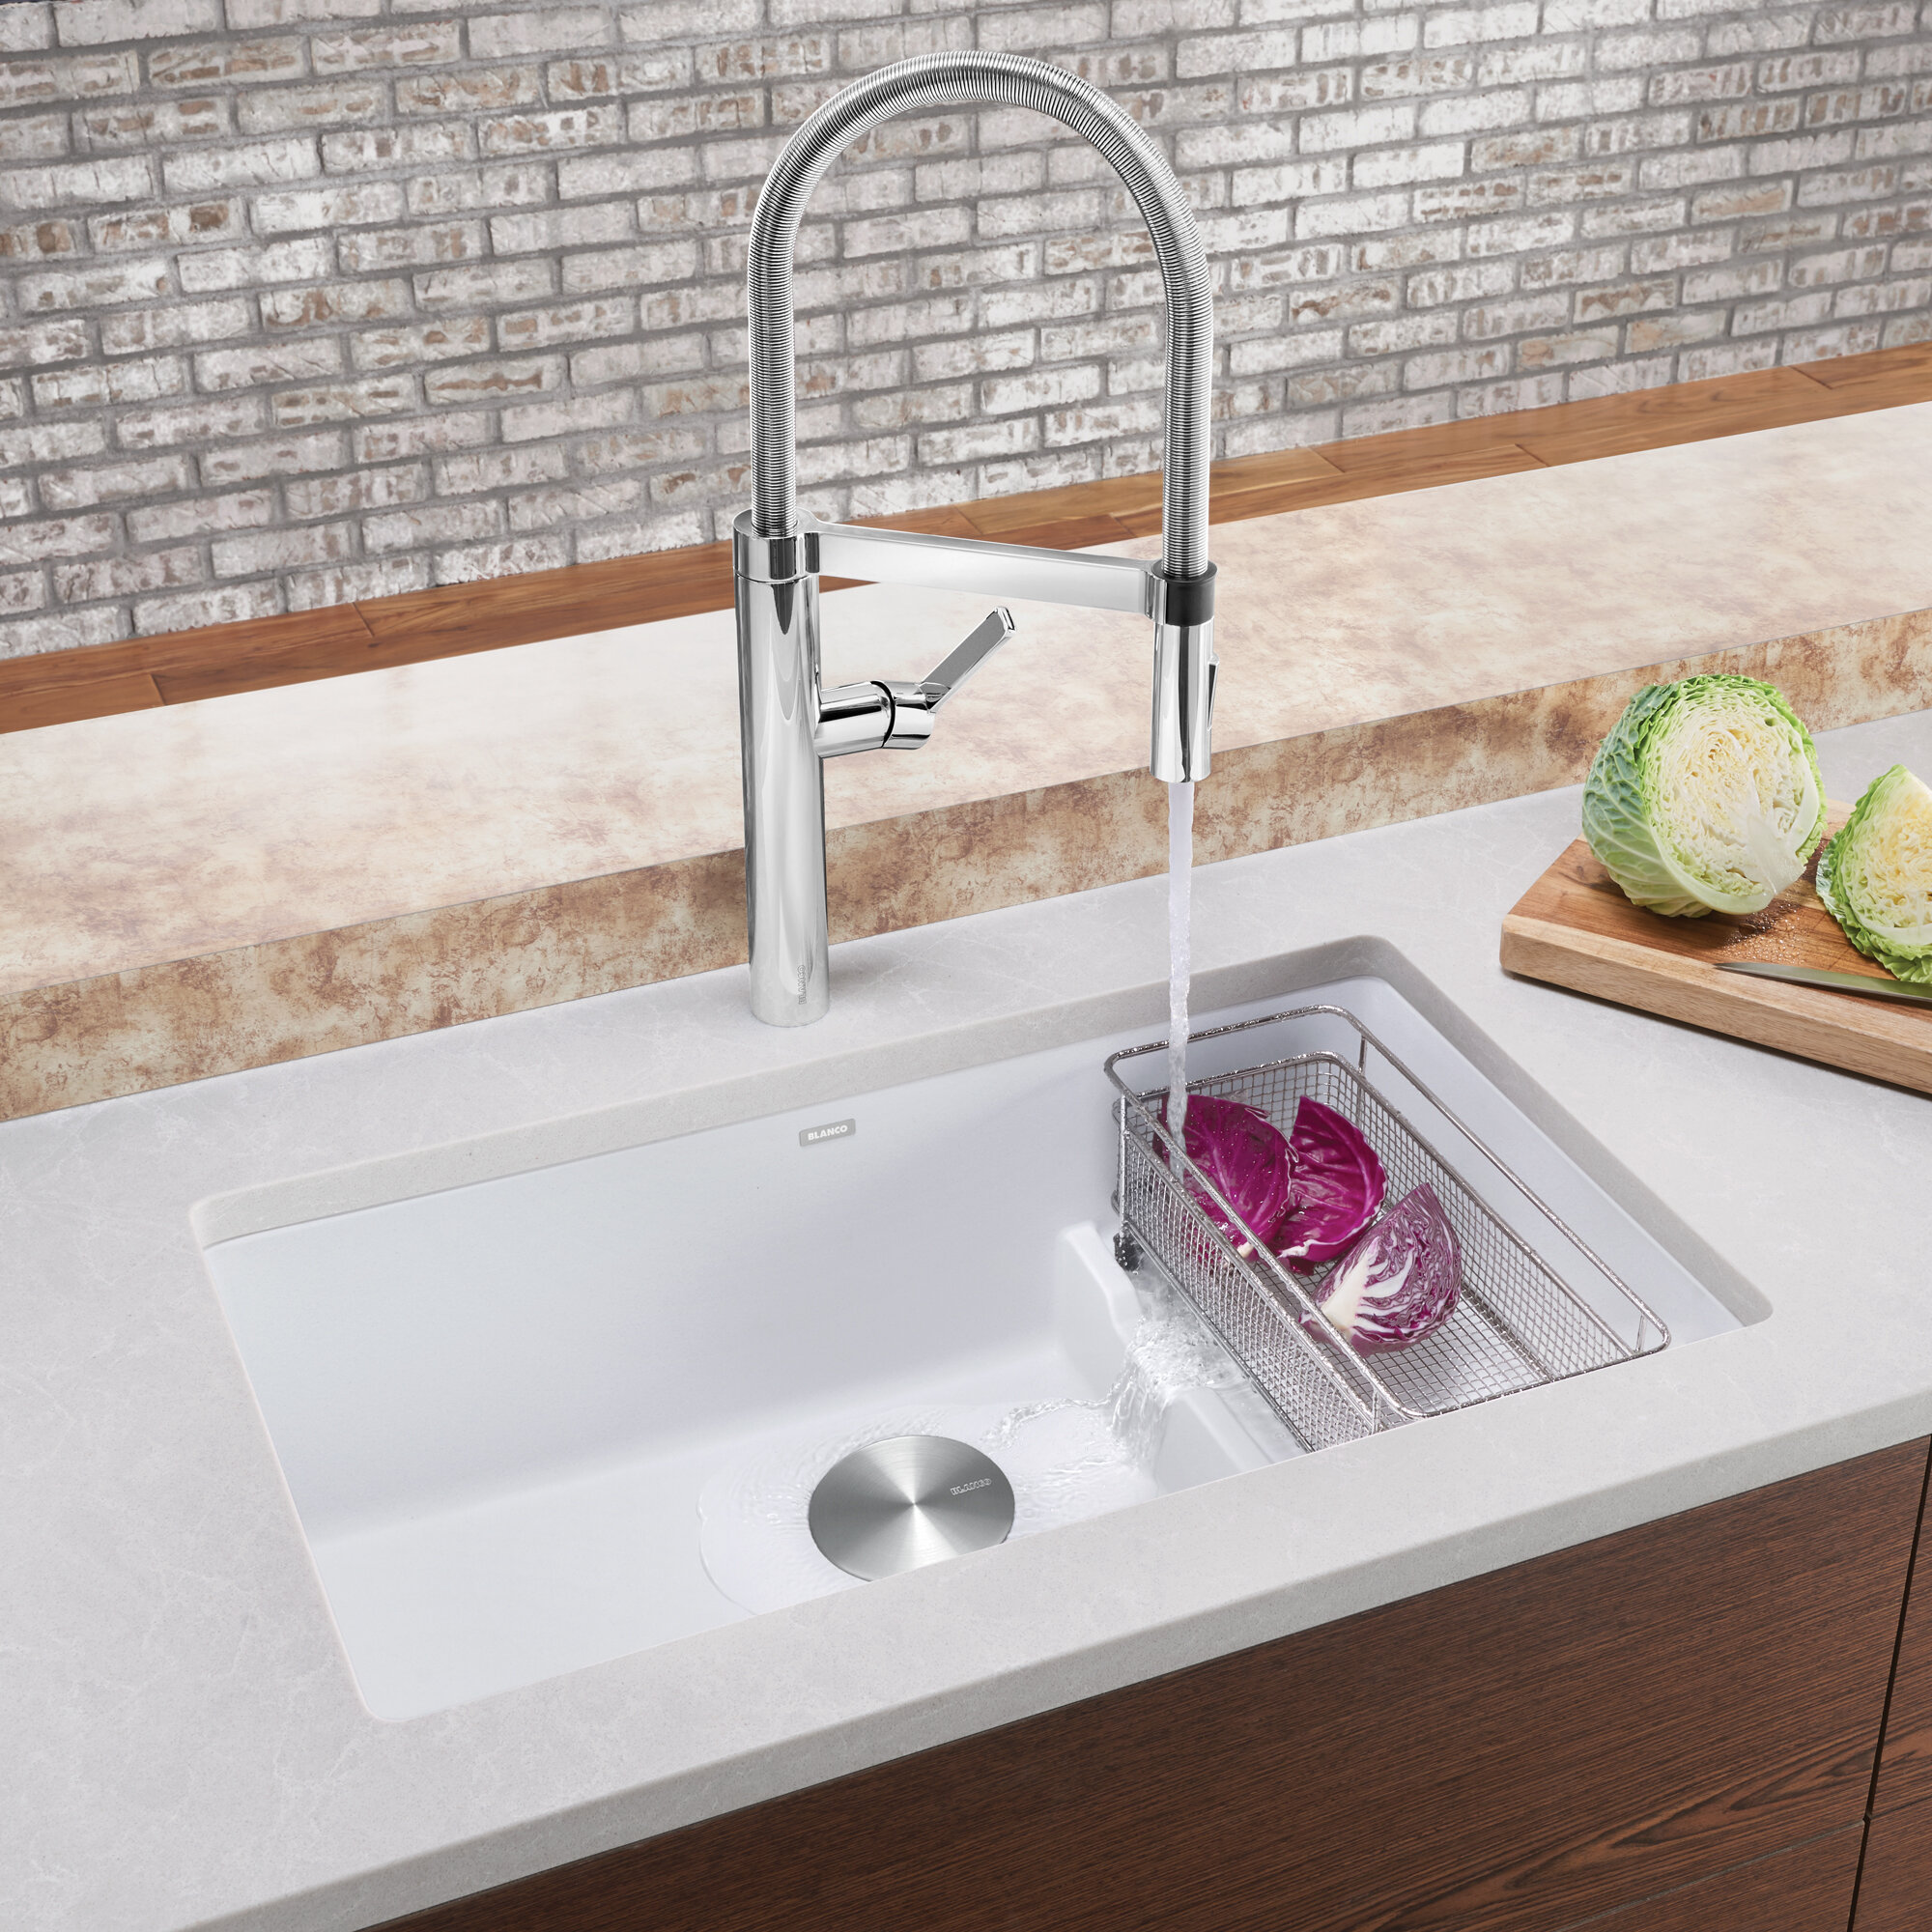 Blanco Precis 29 L X 18 W Undermount Kitchen Sink Reviews